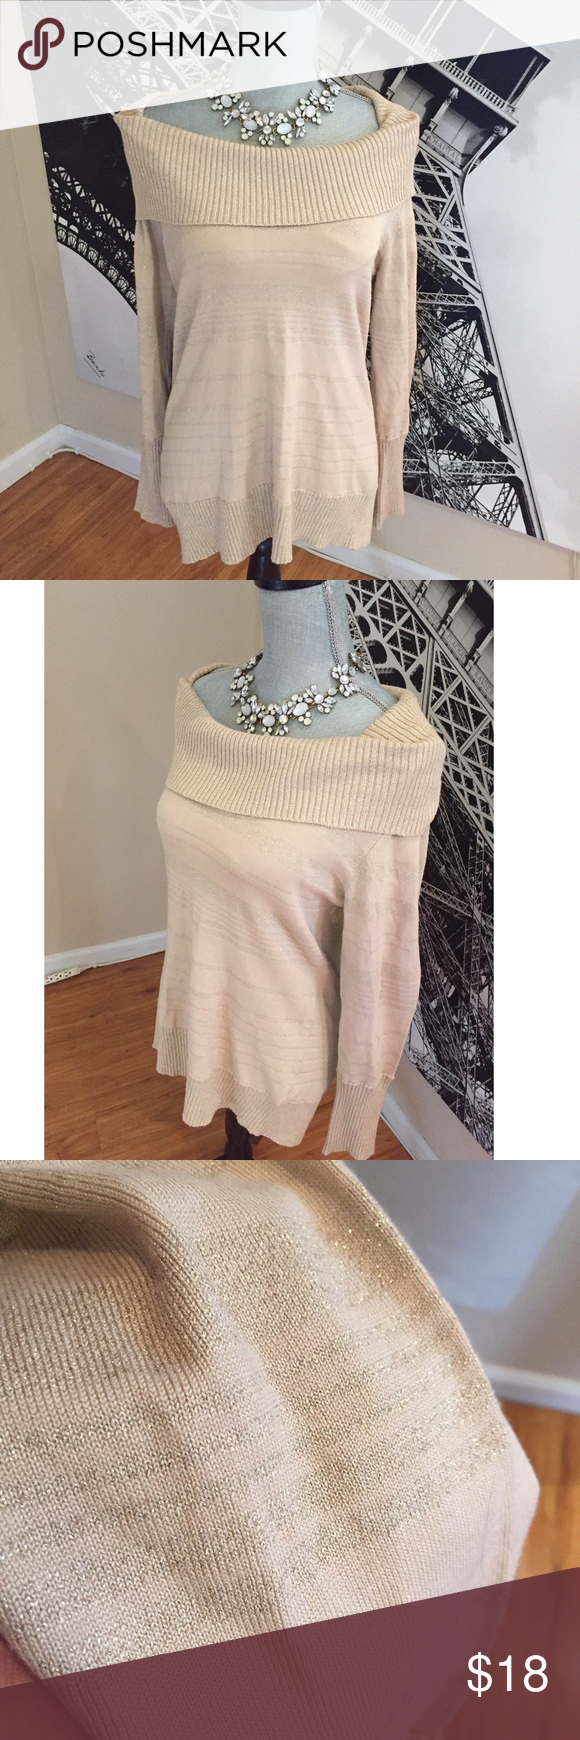 🌟Cream Colored Tunic/Sweater w/ Gold Stripes-EUC | Gold stripes ...